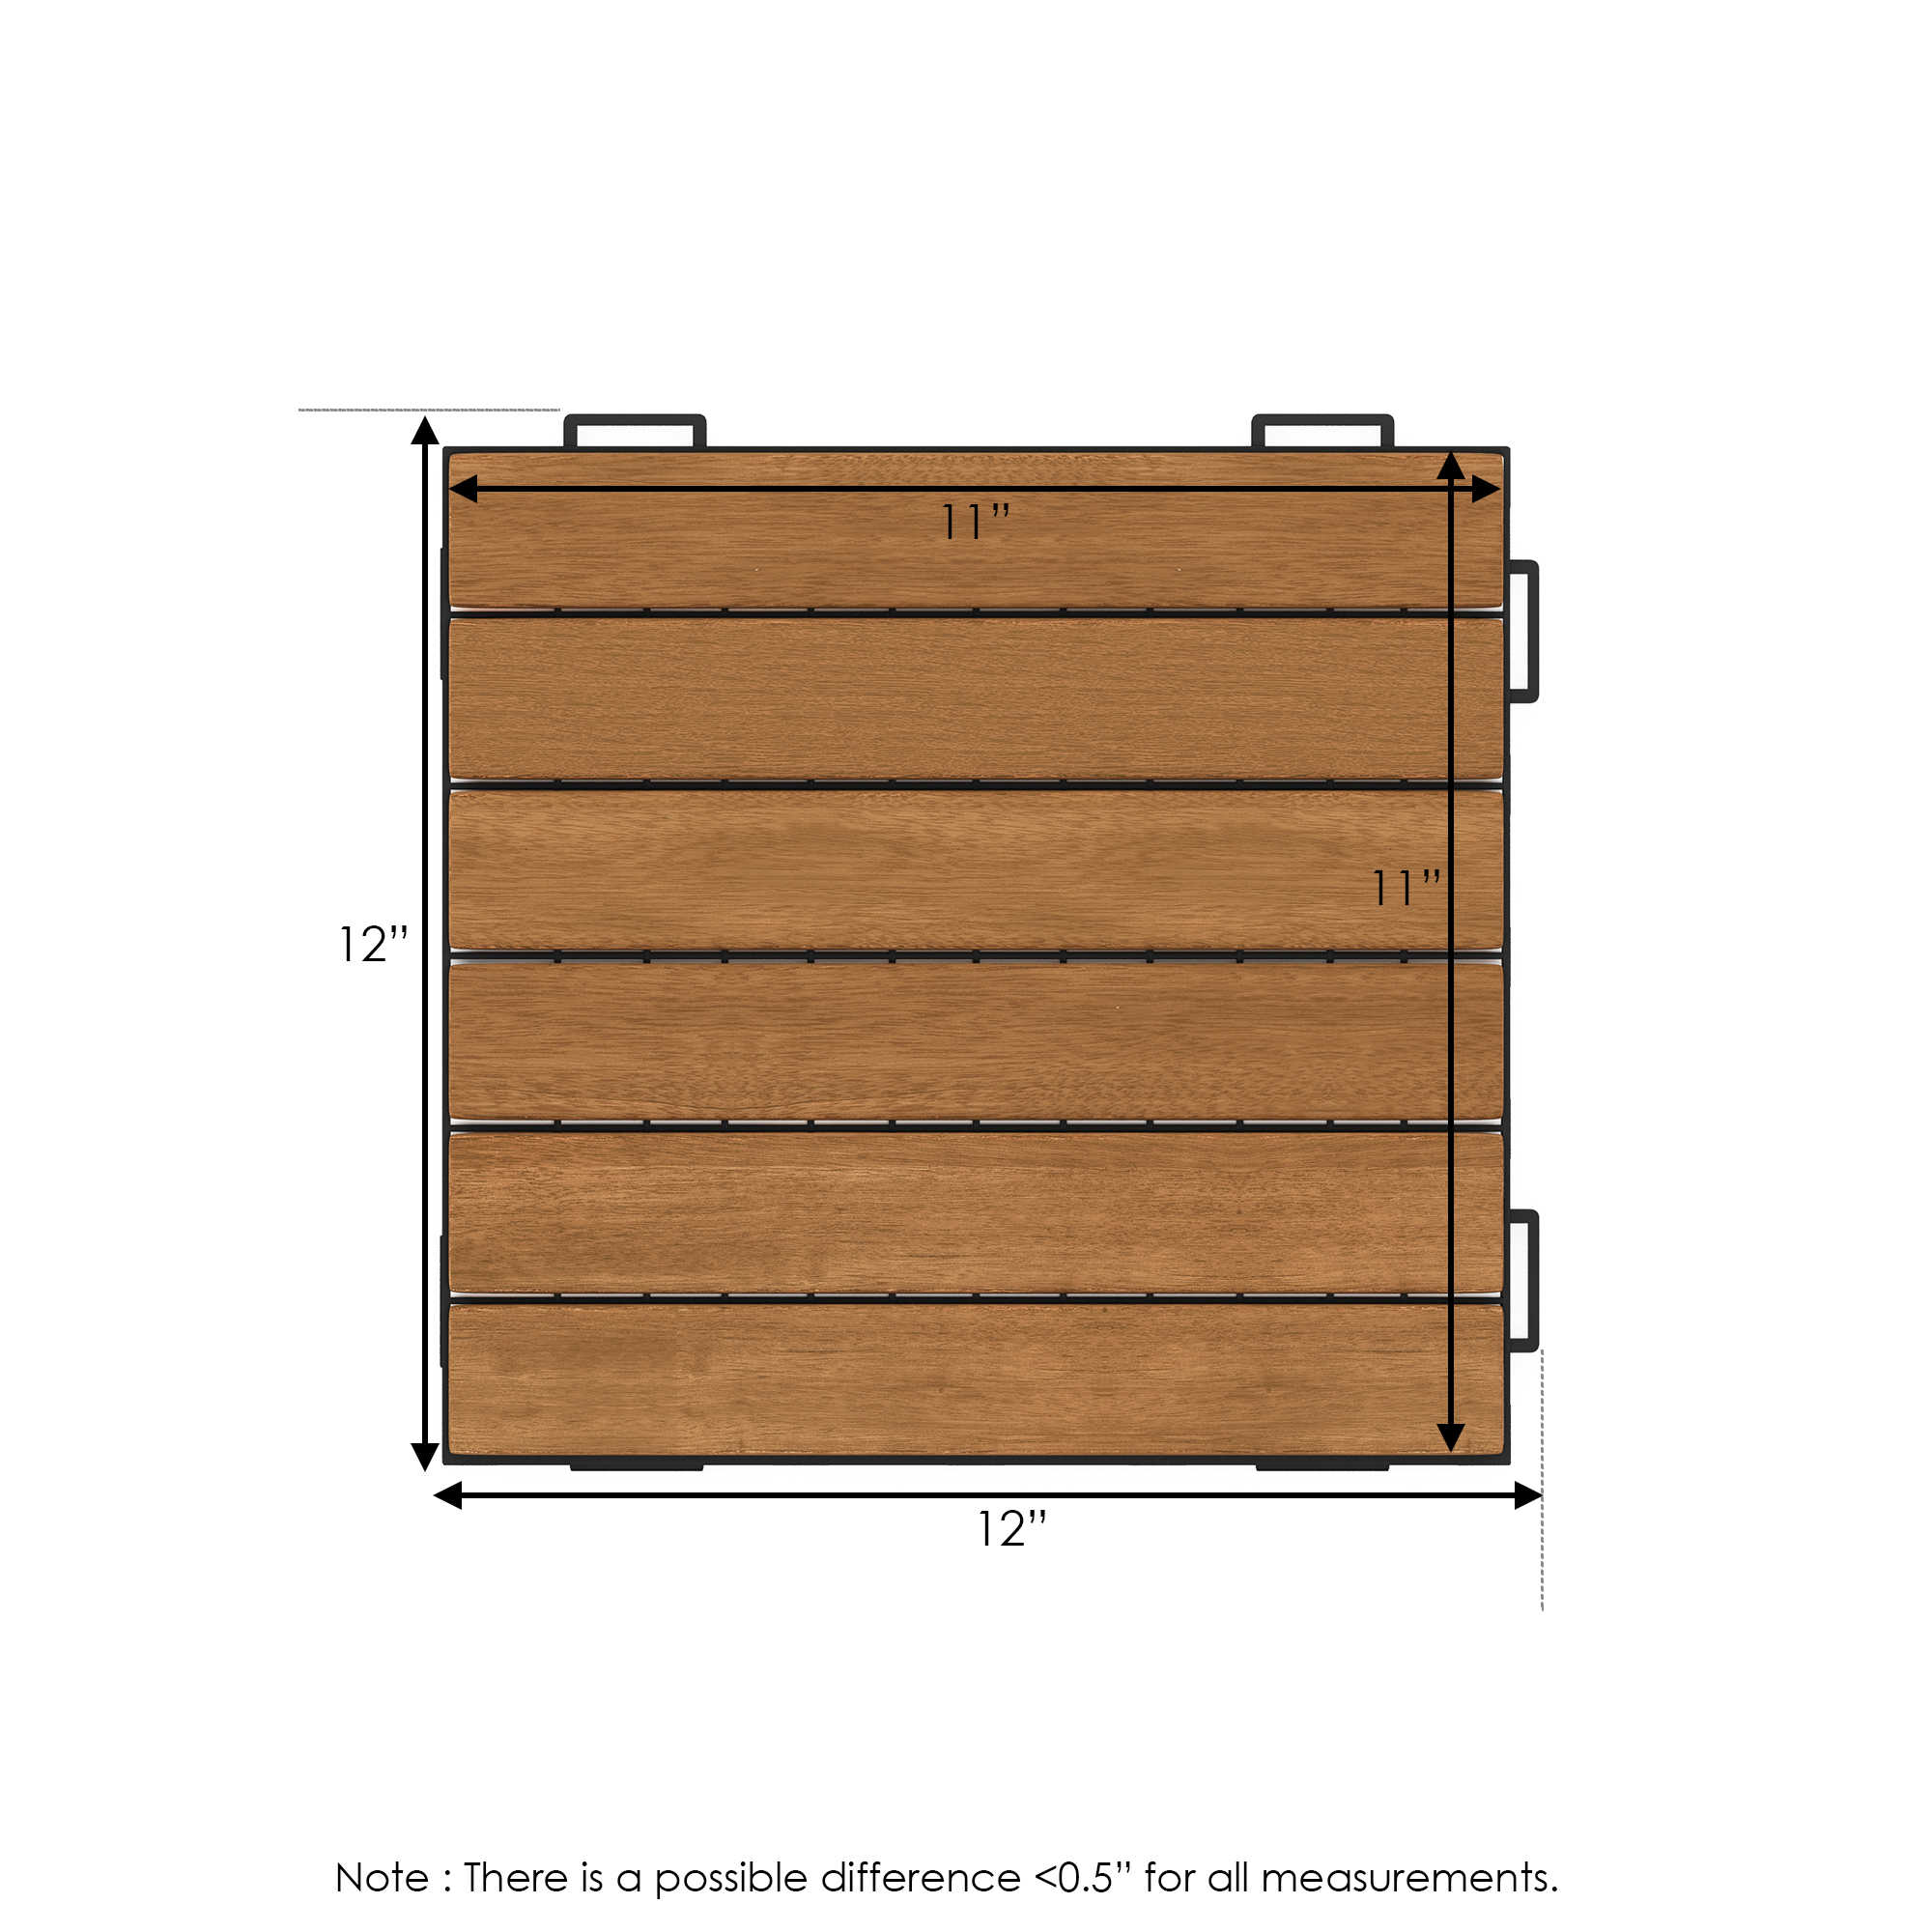 Furinno Tioman Outdoor Floor Decking Wood Tile Interlock 10PC/CTN, Honey Oak Color, FG181034